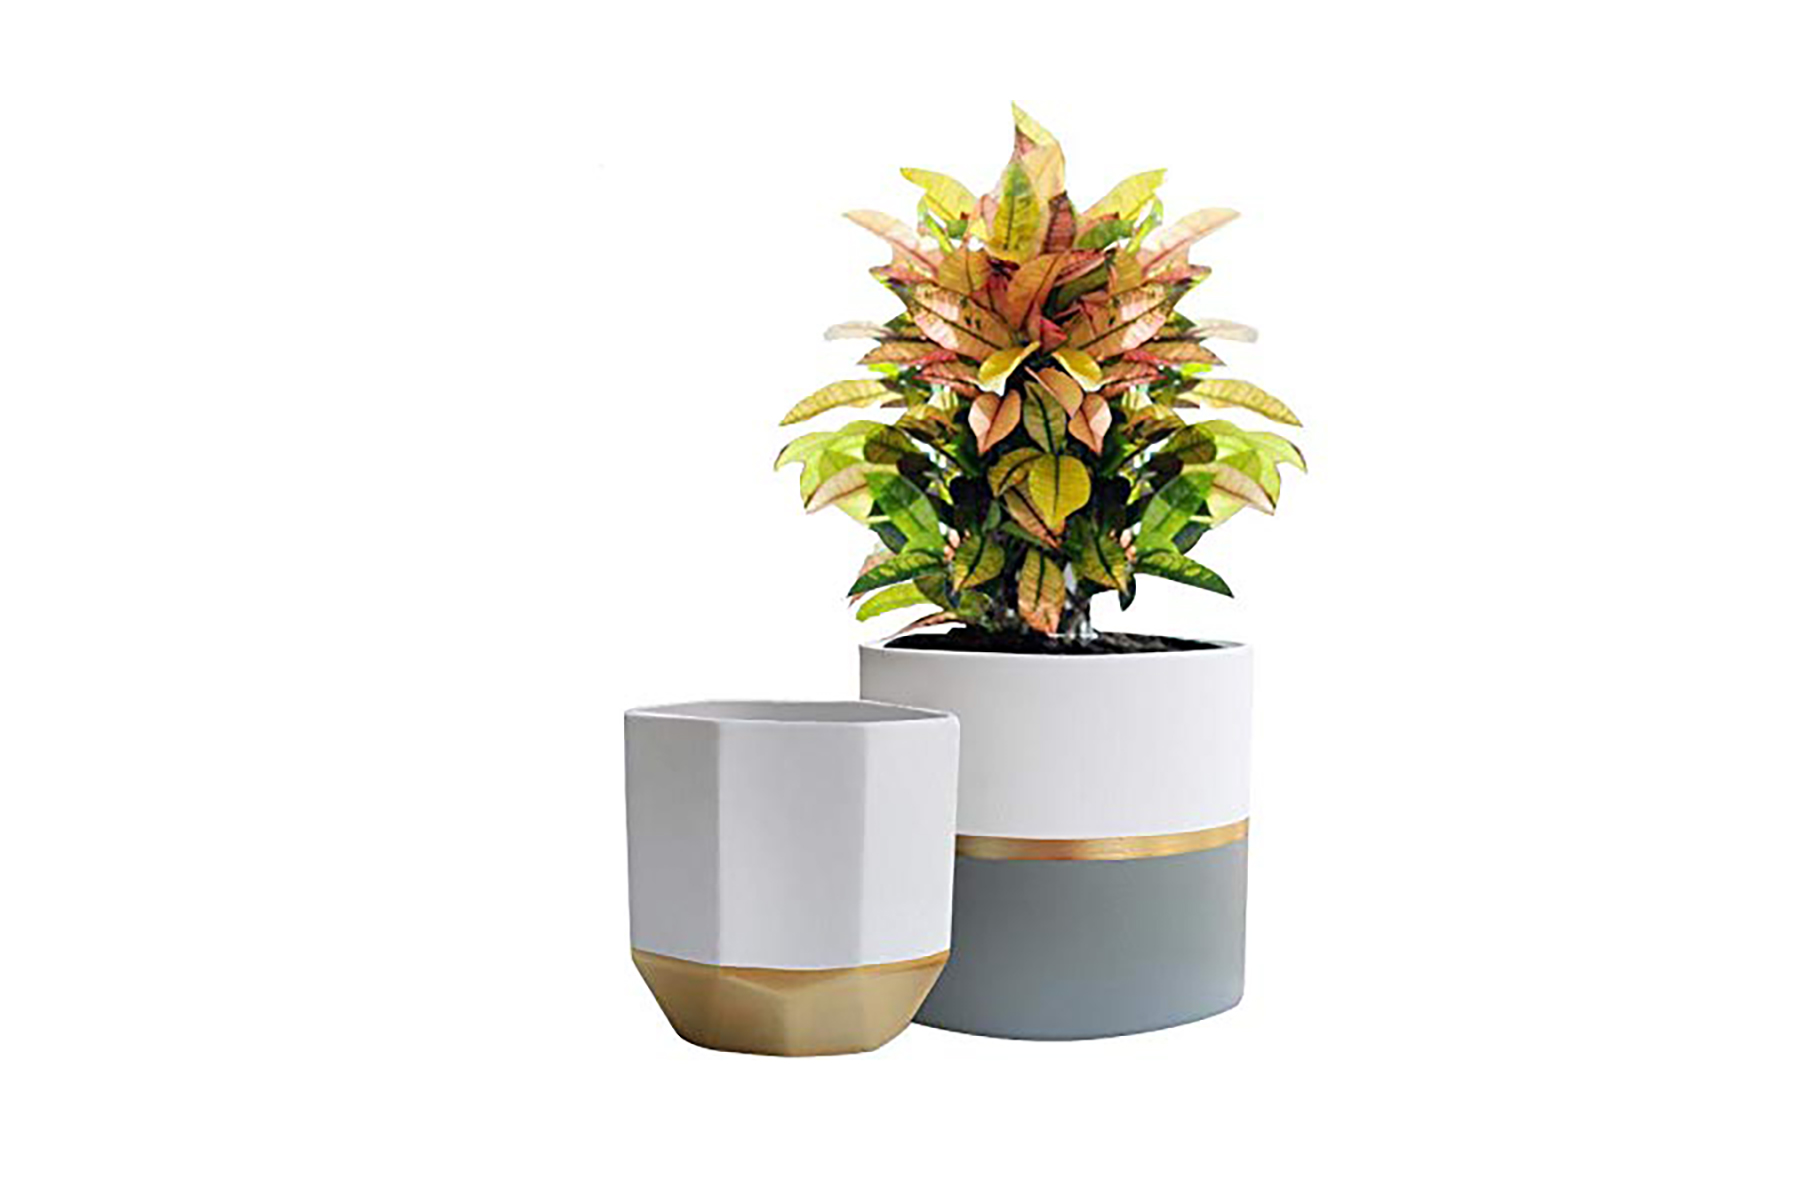 White Ceramic Flower Pots with Gold and Grey on Amazon